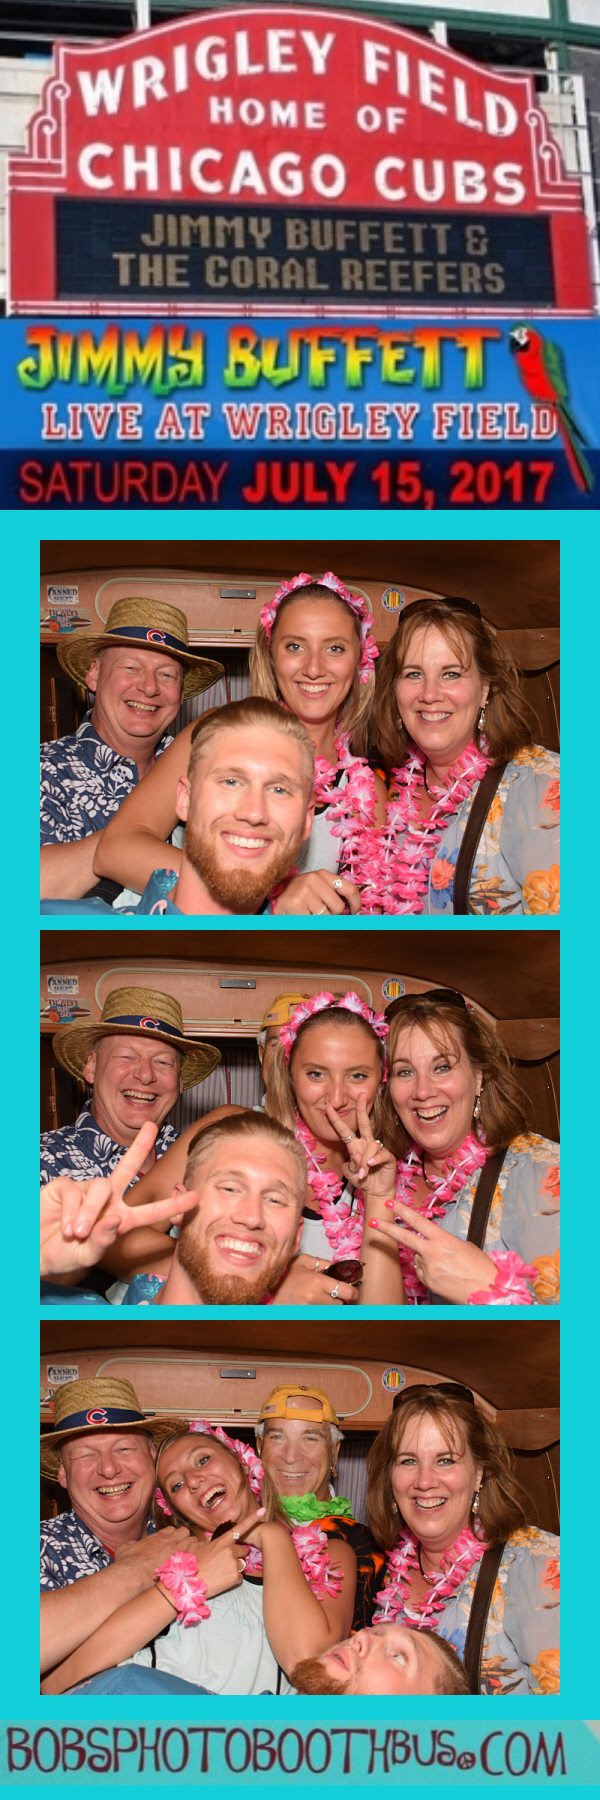 Jimmy Buffett final photo strip graphic_51.jpg